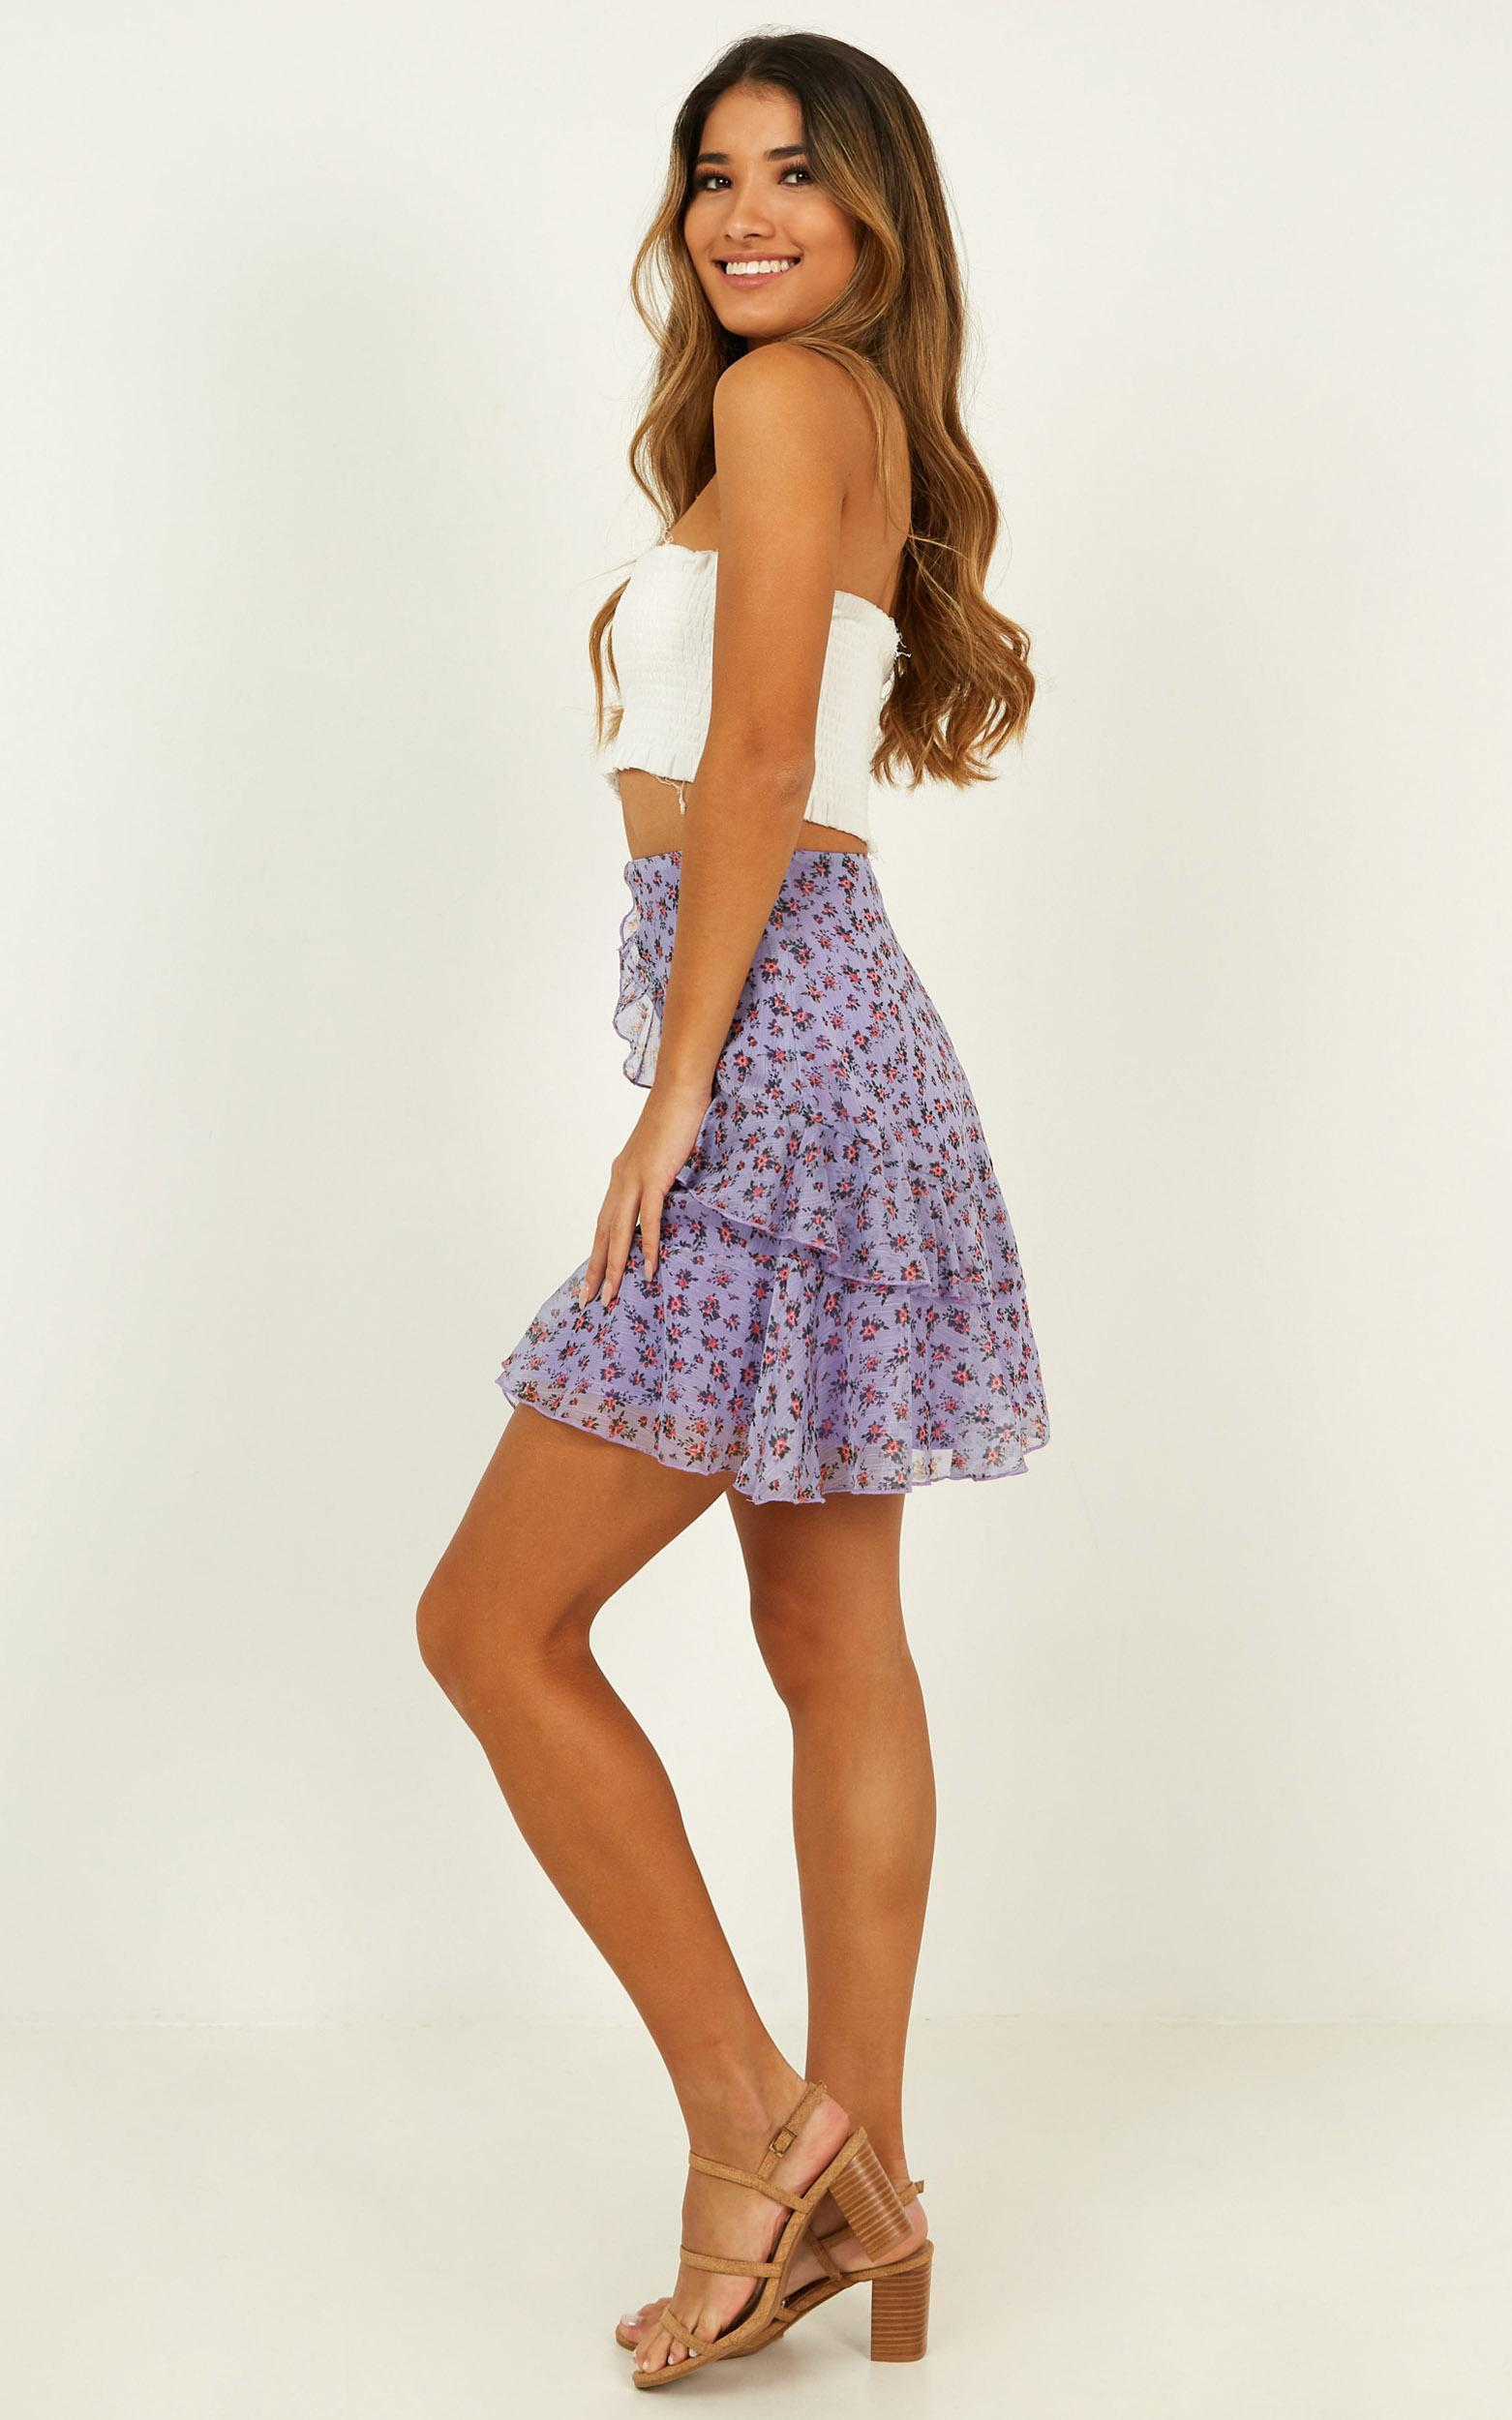 All So Crazy Skirt In lilac floral - 14 (XL), Mauve, hi-res image number null